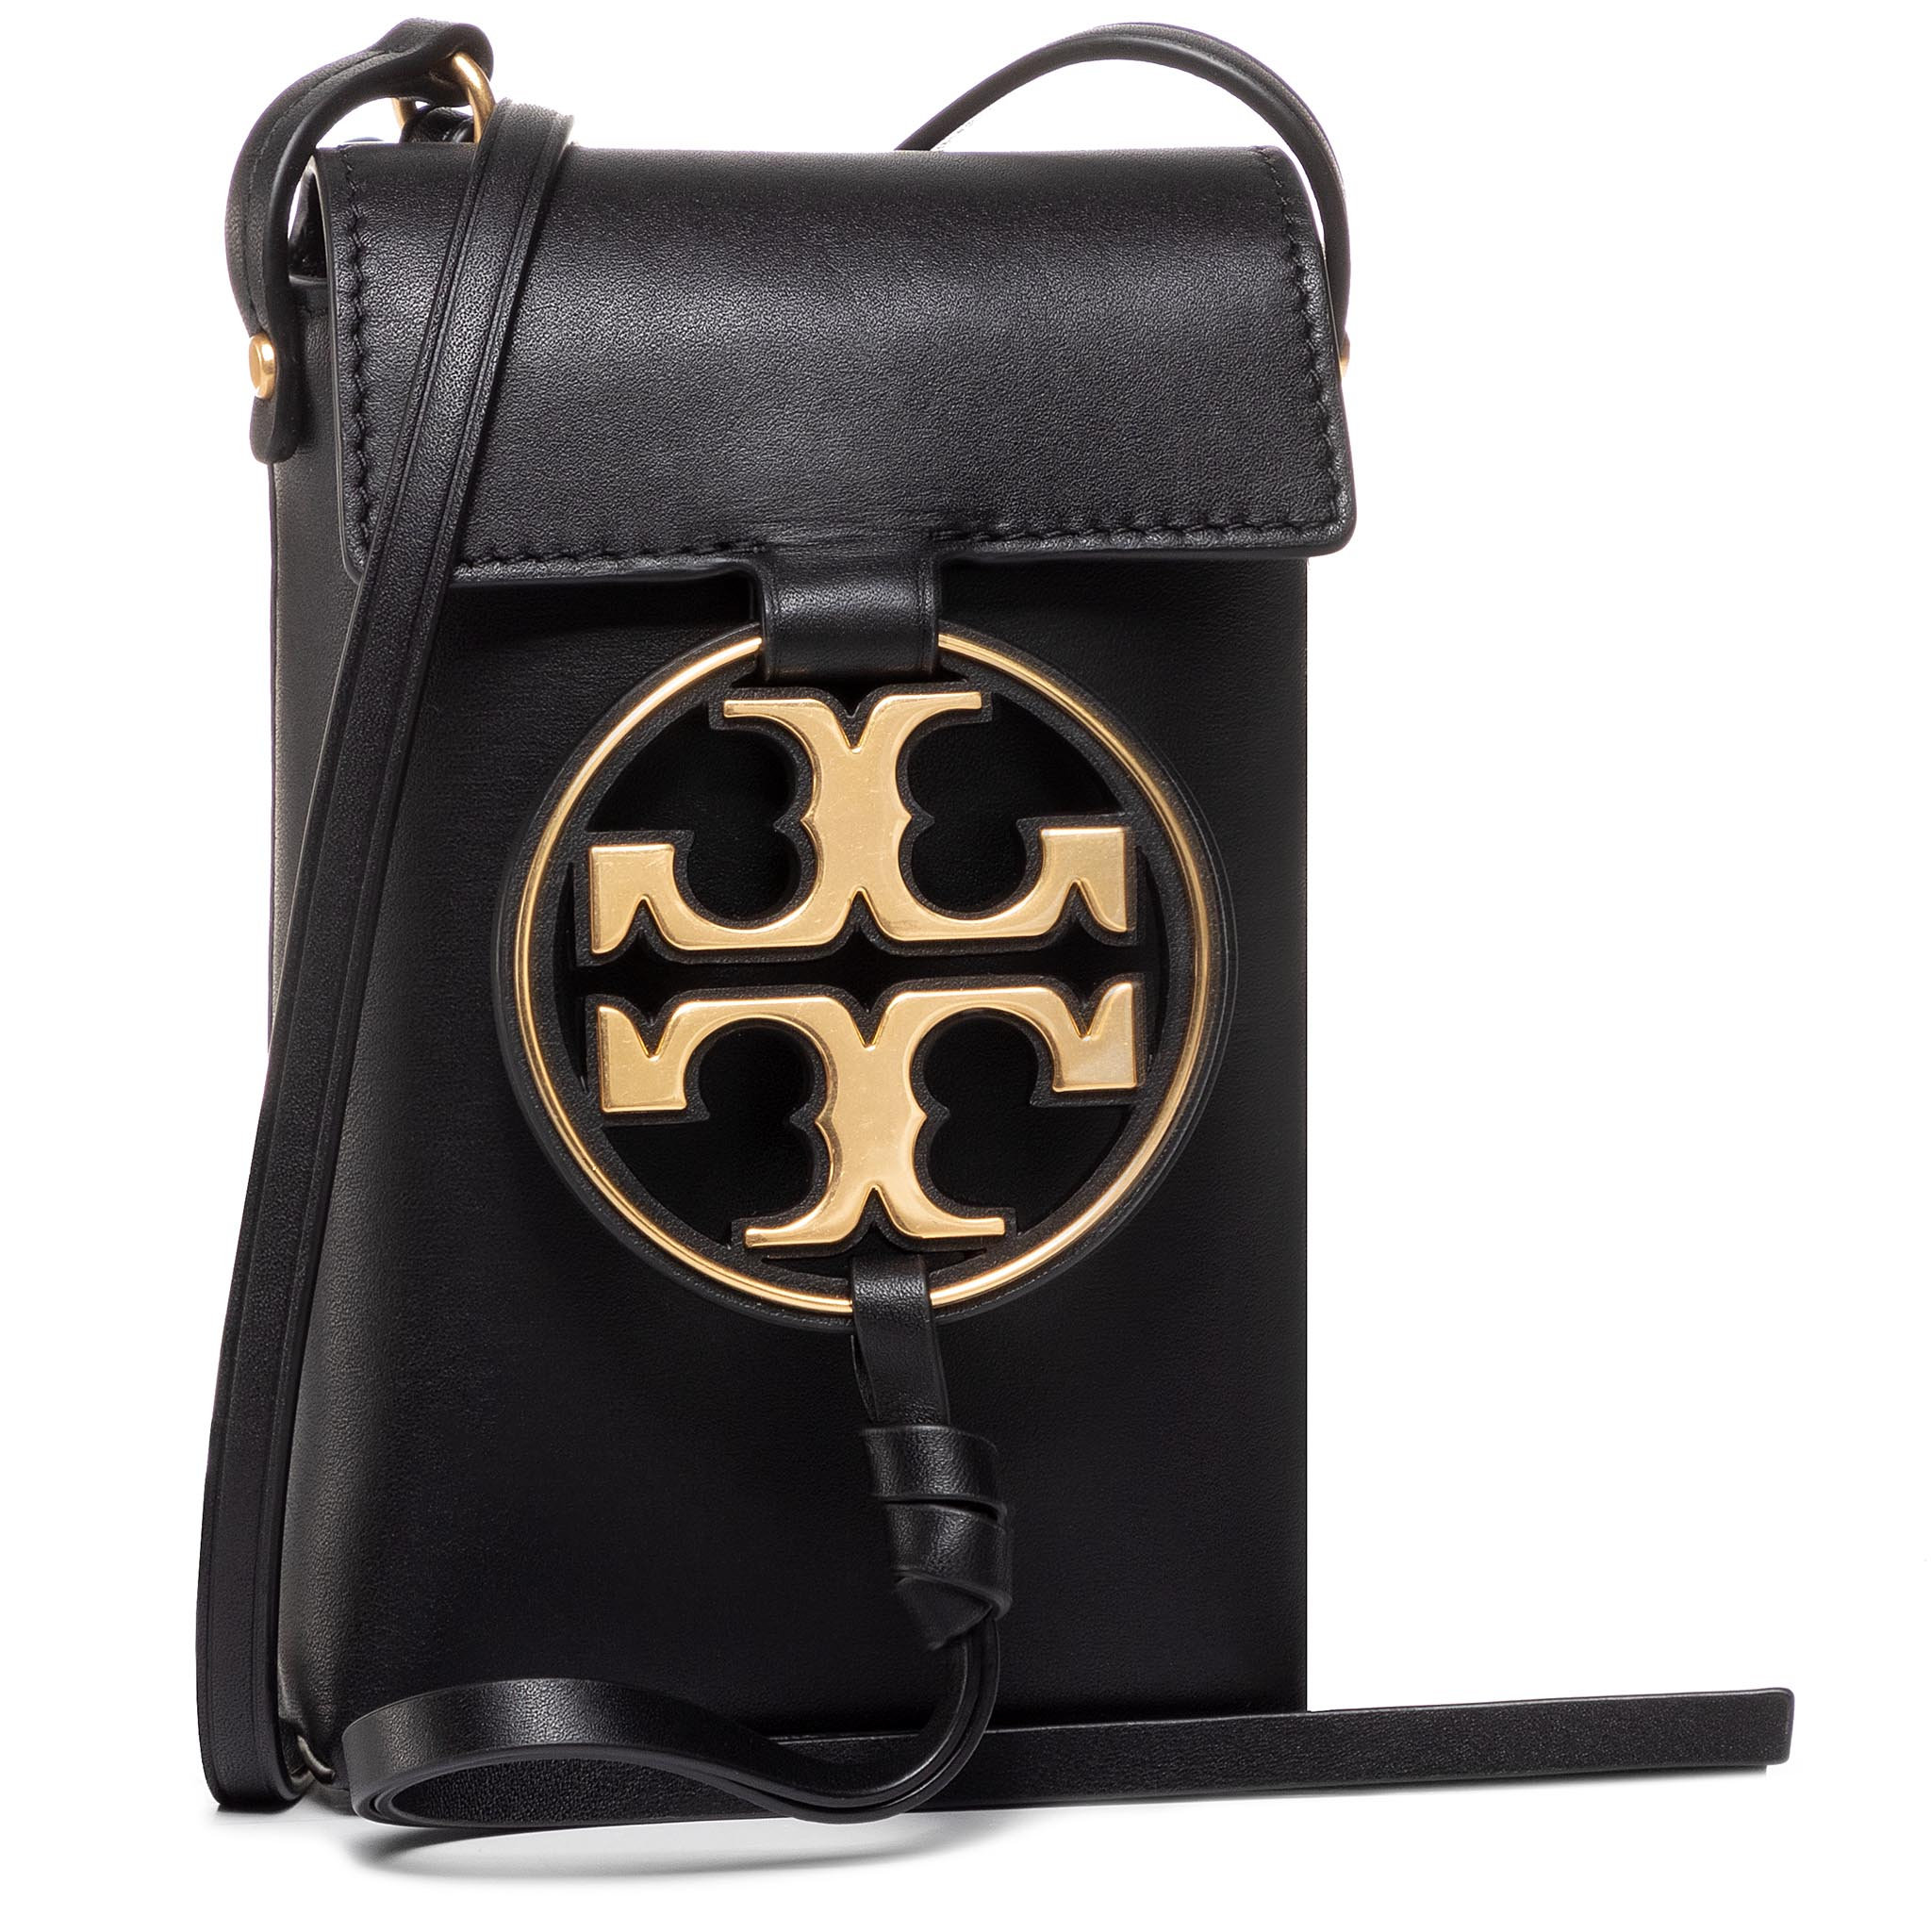 Geantă TORY BURCH - Miller Metal Phone Cross-Body 61183 Black 001